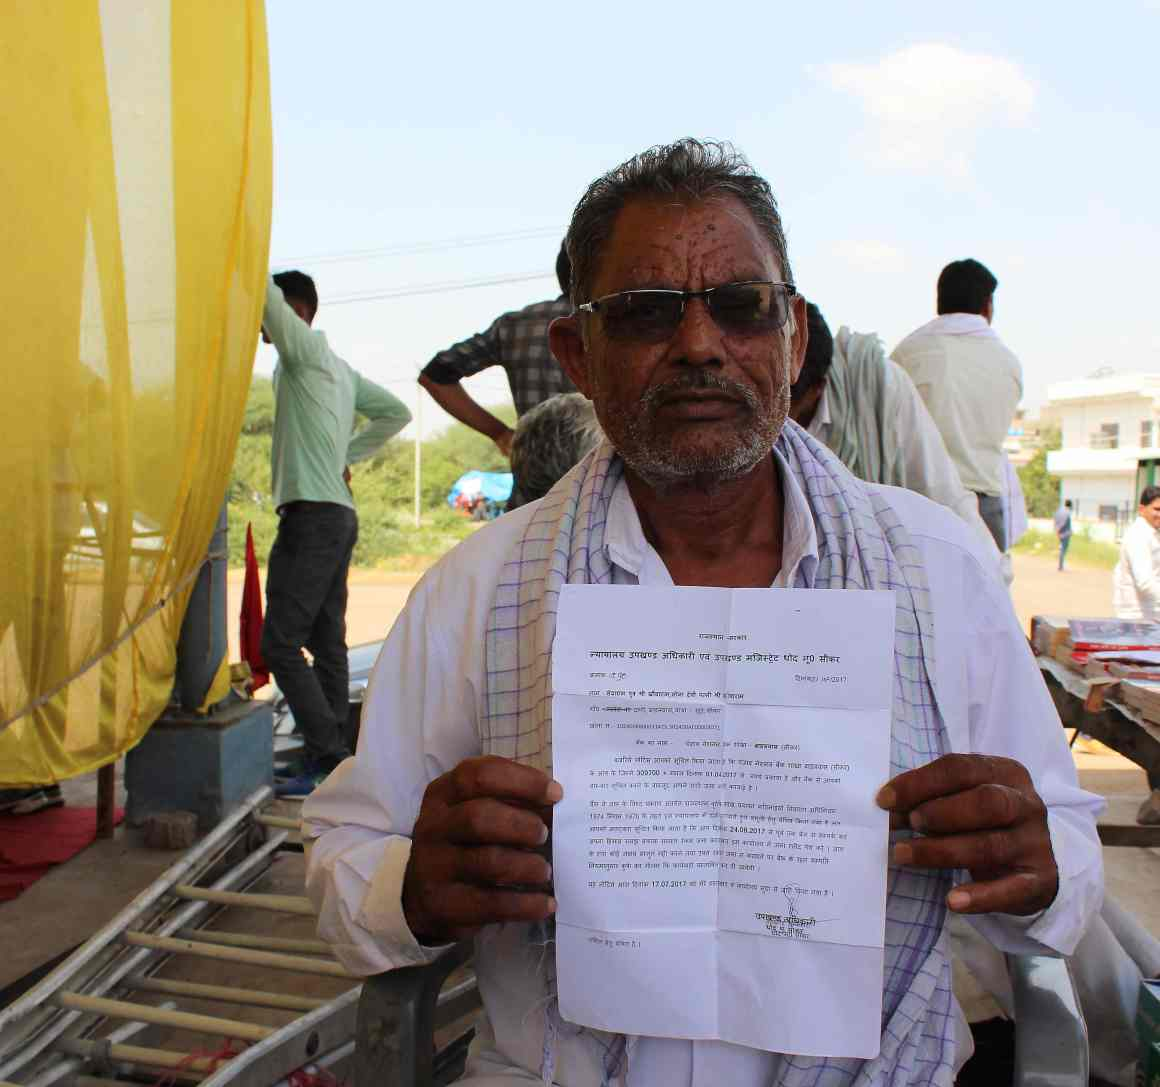 Sevaram holding up the notice from the magistrate regarding the auction of his property. Credit: Shruti Jain